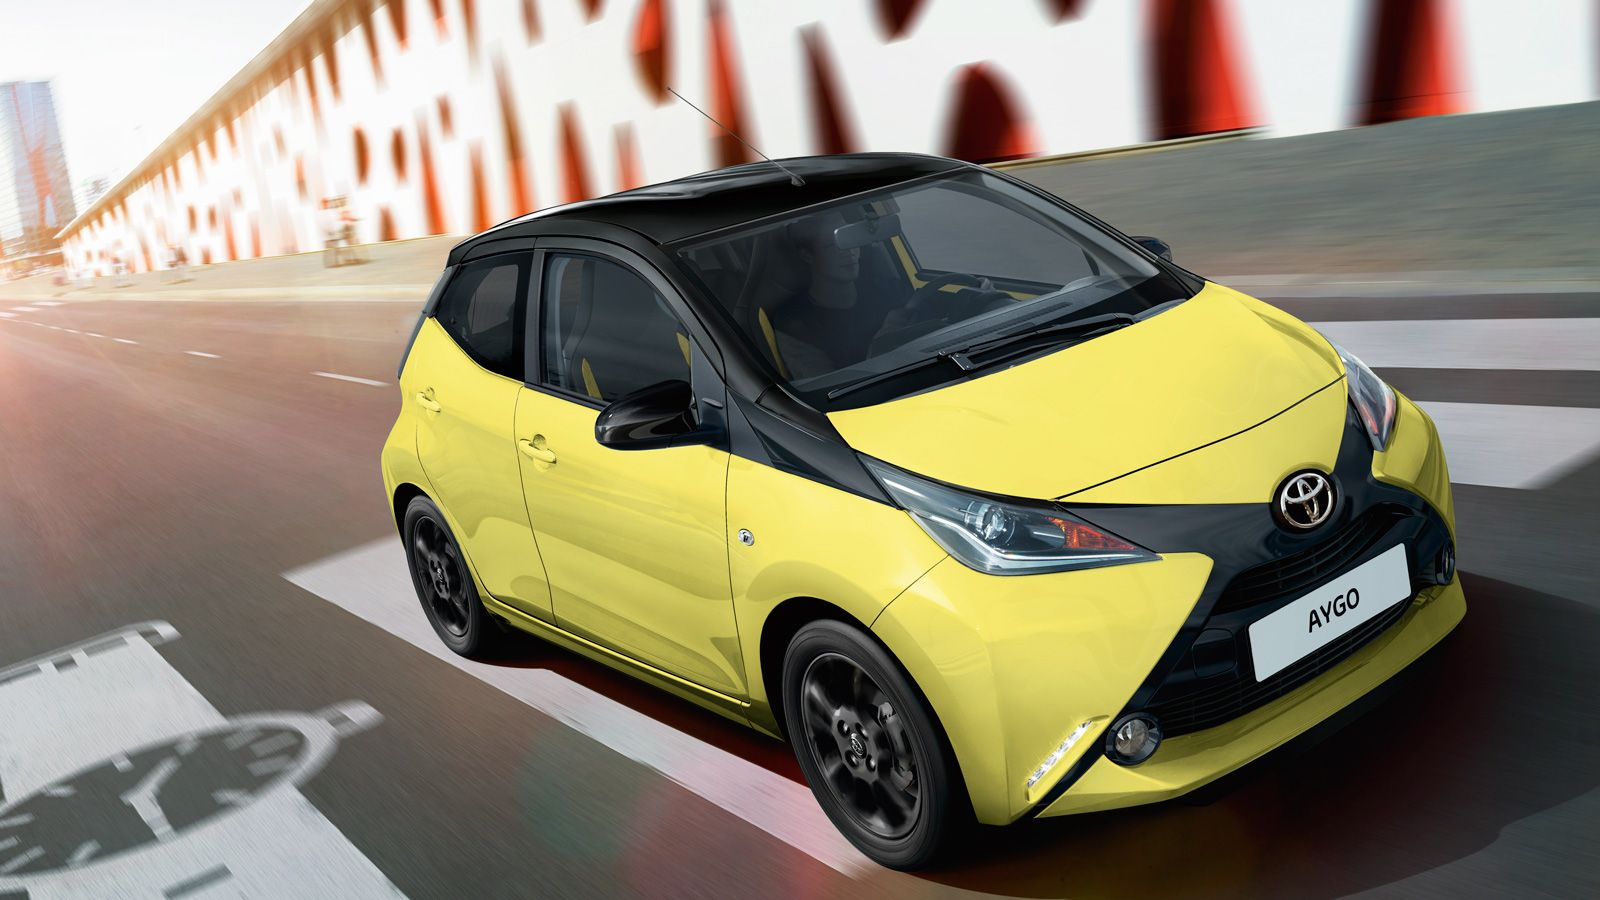 AYGO, Small Cars, city cars, limited edition, yellow fizz